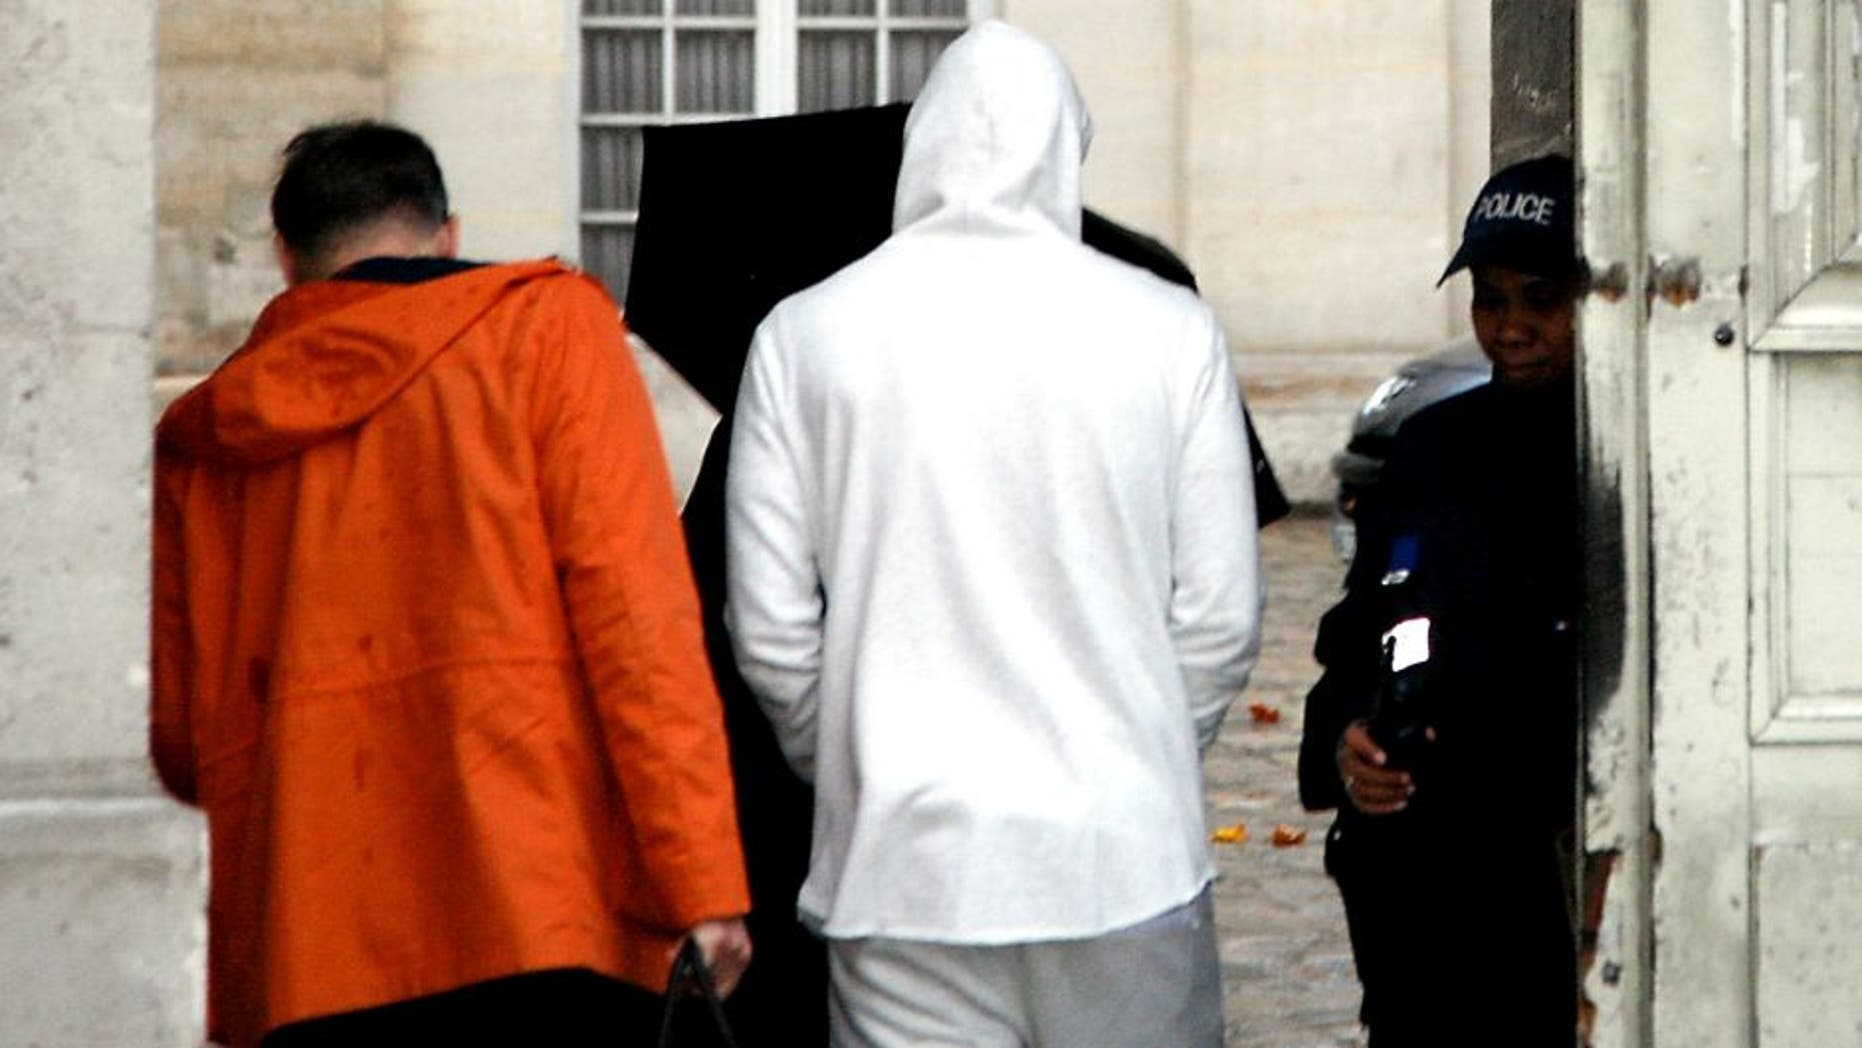 French footballer Karim Benzema (C), wearing a white hooded jersey, arrives at the police station in Versailles, southwest of Paris, on November 4, 2015. French footballer Karim Benzema was arrested on November 4 in connection with blackmail over a sextape featuring fellow player Mathieu Valbuena, a source close to the probe told AFP. AFP PHOTO / MATTHIEU ALEXANDRE (Photo credit should read MATTHIEU ALEXANDRE/AFP/Getty Images)